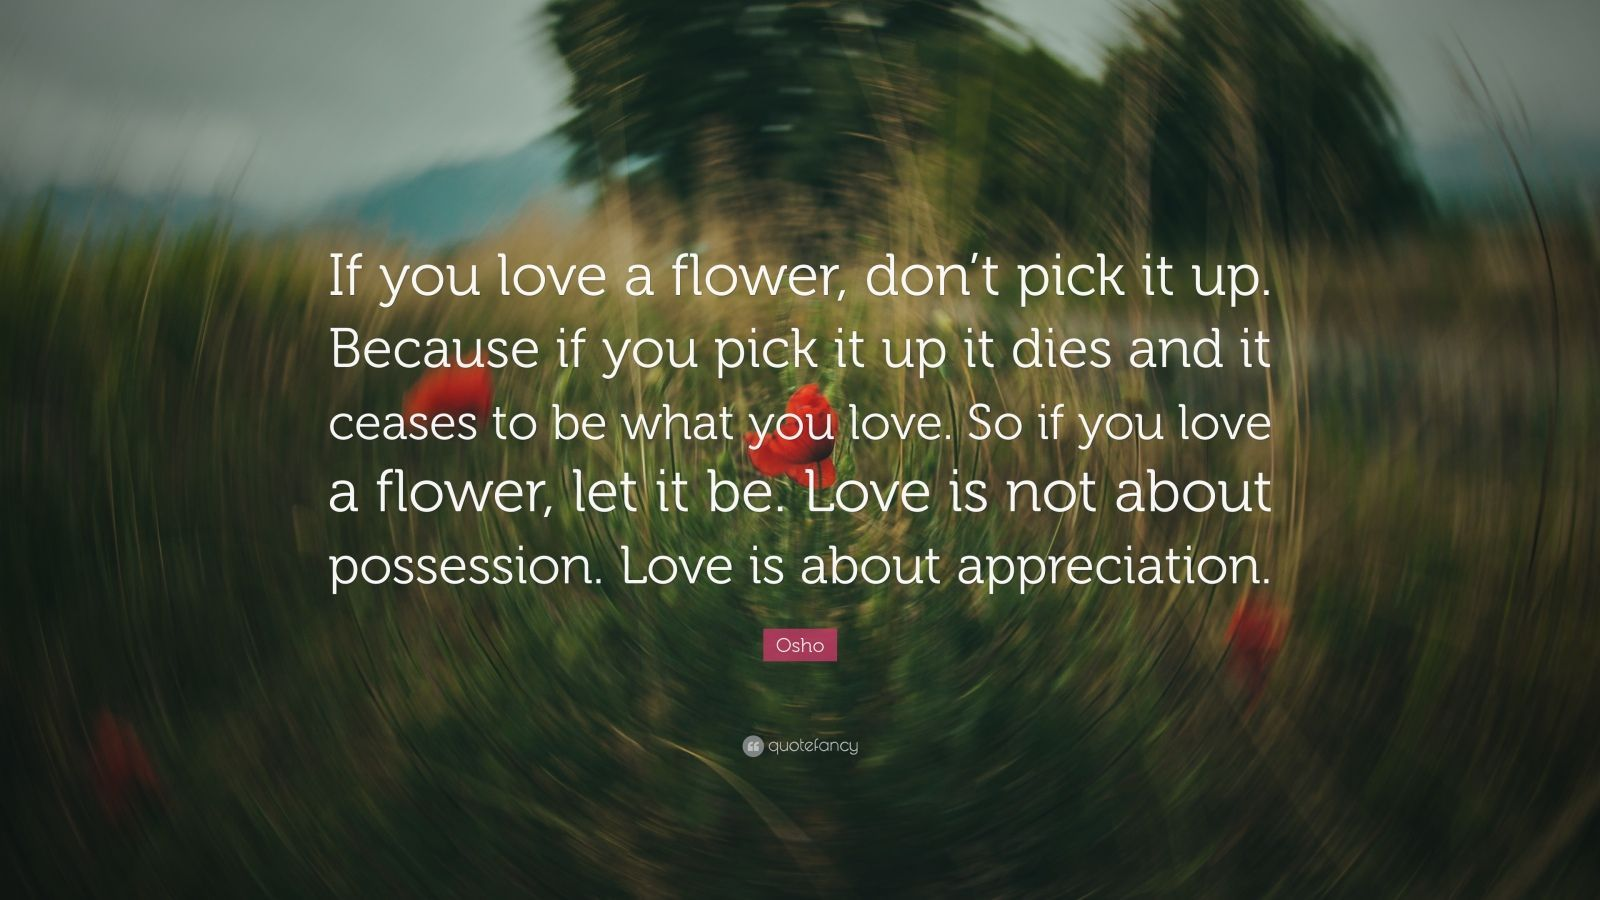 Osho Quote If You Love A Flower Dont Pick It Up Because If You Pick It Up It Dies And It Ceases To Be What You Love